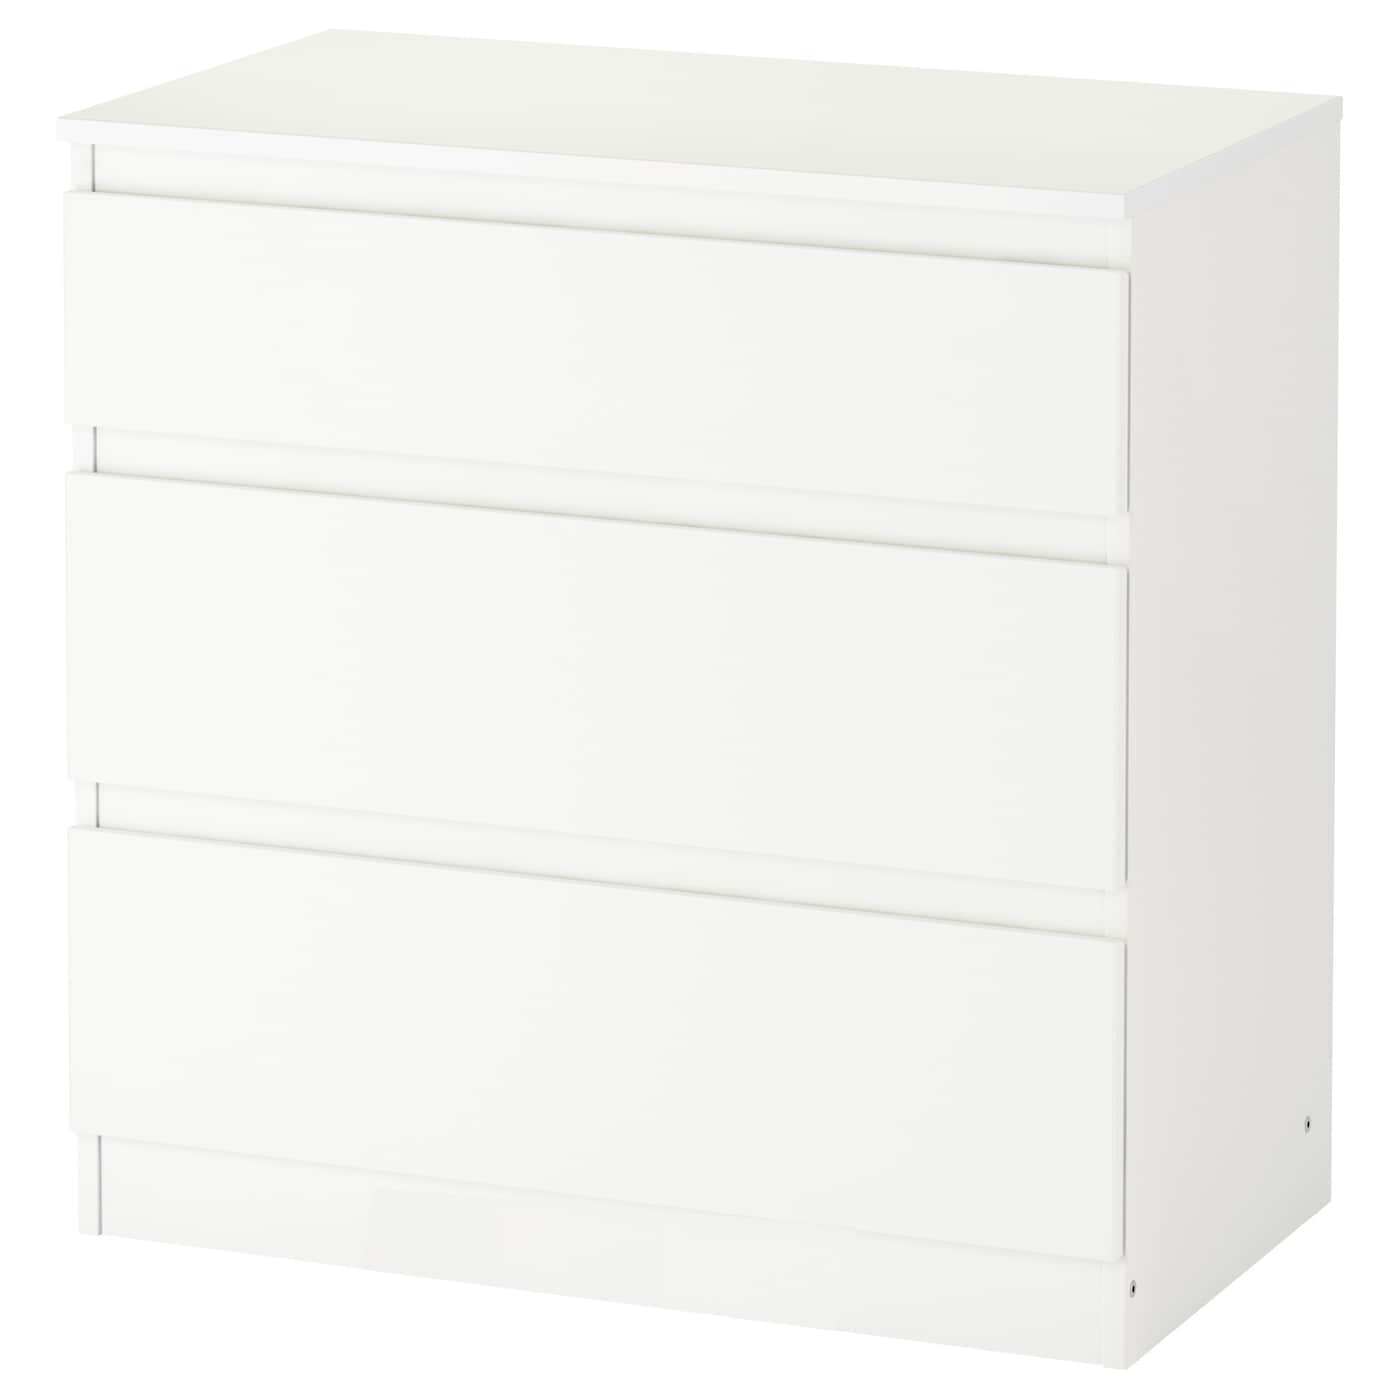 kullen commode 3 tiroirs blanc 70x72 cm ikea. Black Bedroom Furniture Sets. Home Design Ideas